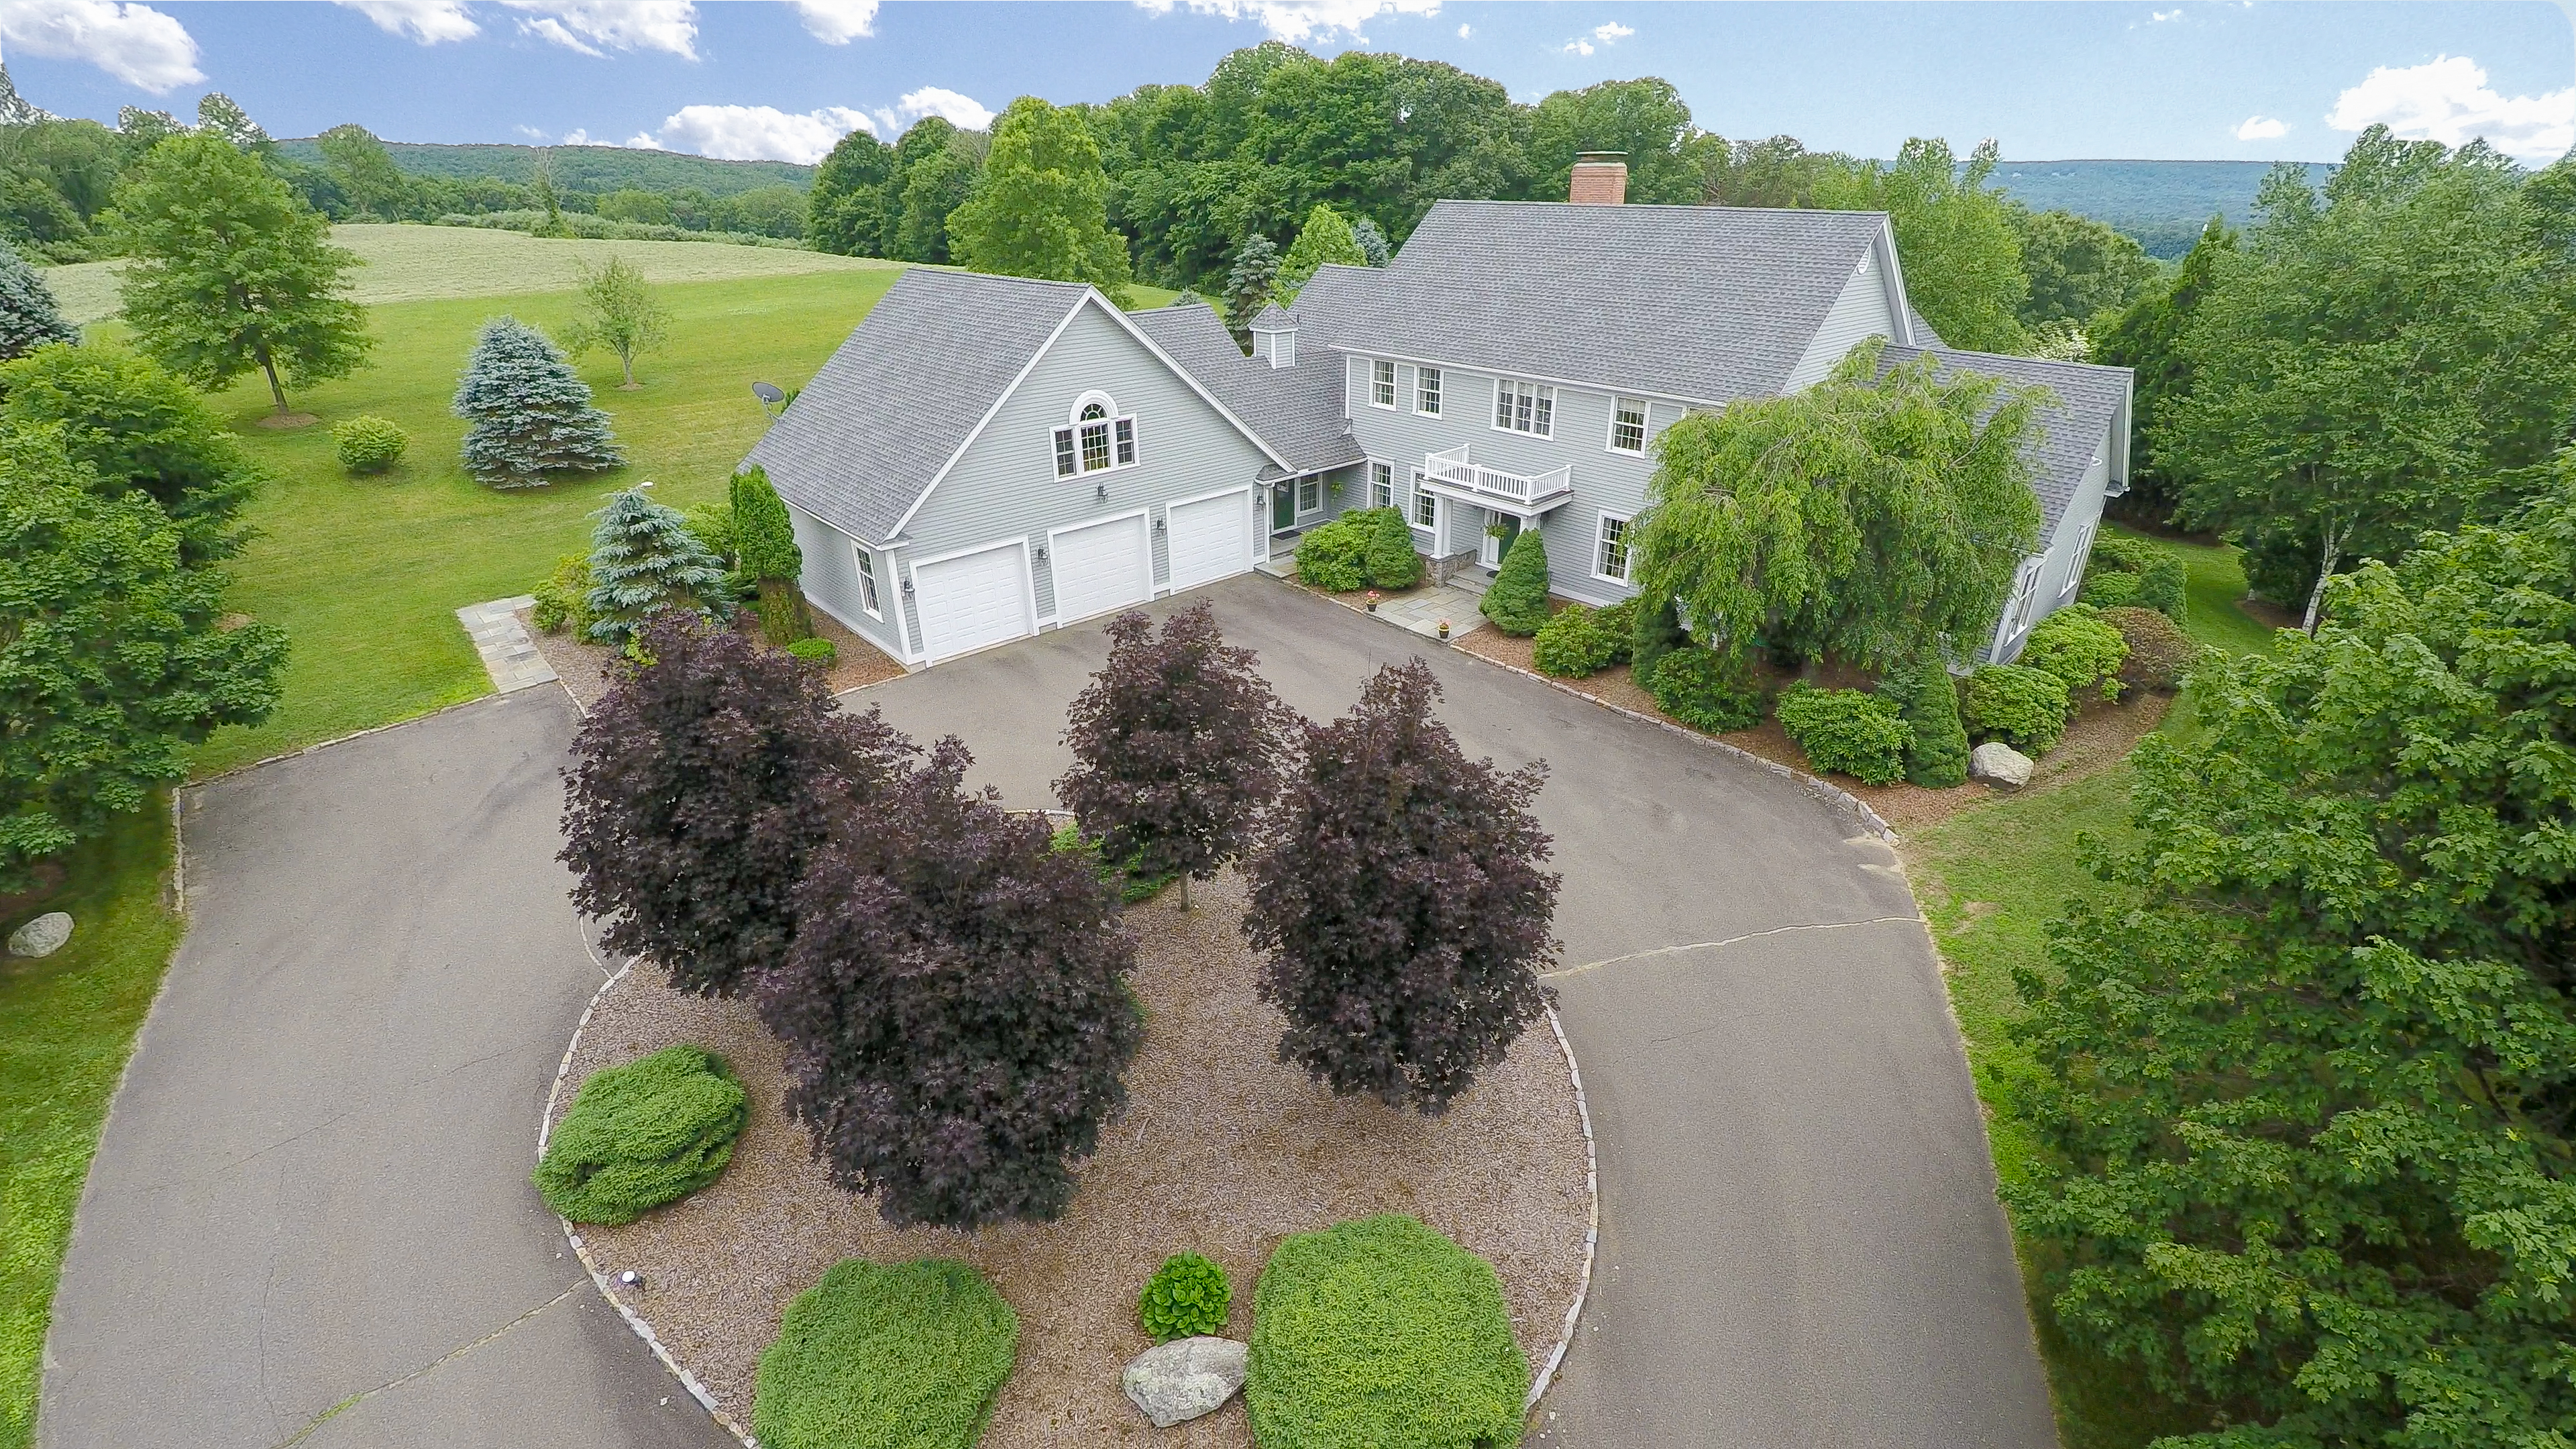 Maison unifamiliale pour l Vente à Exclusive Estate 162 Middle Road Tpke Woodbury, Connecticut, 06798 États-Unis